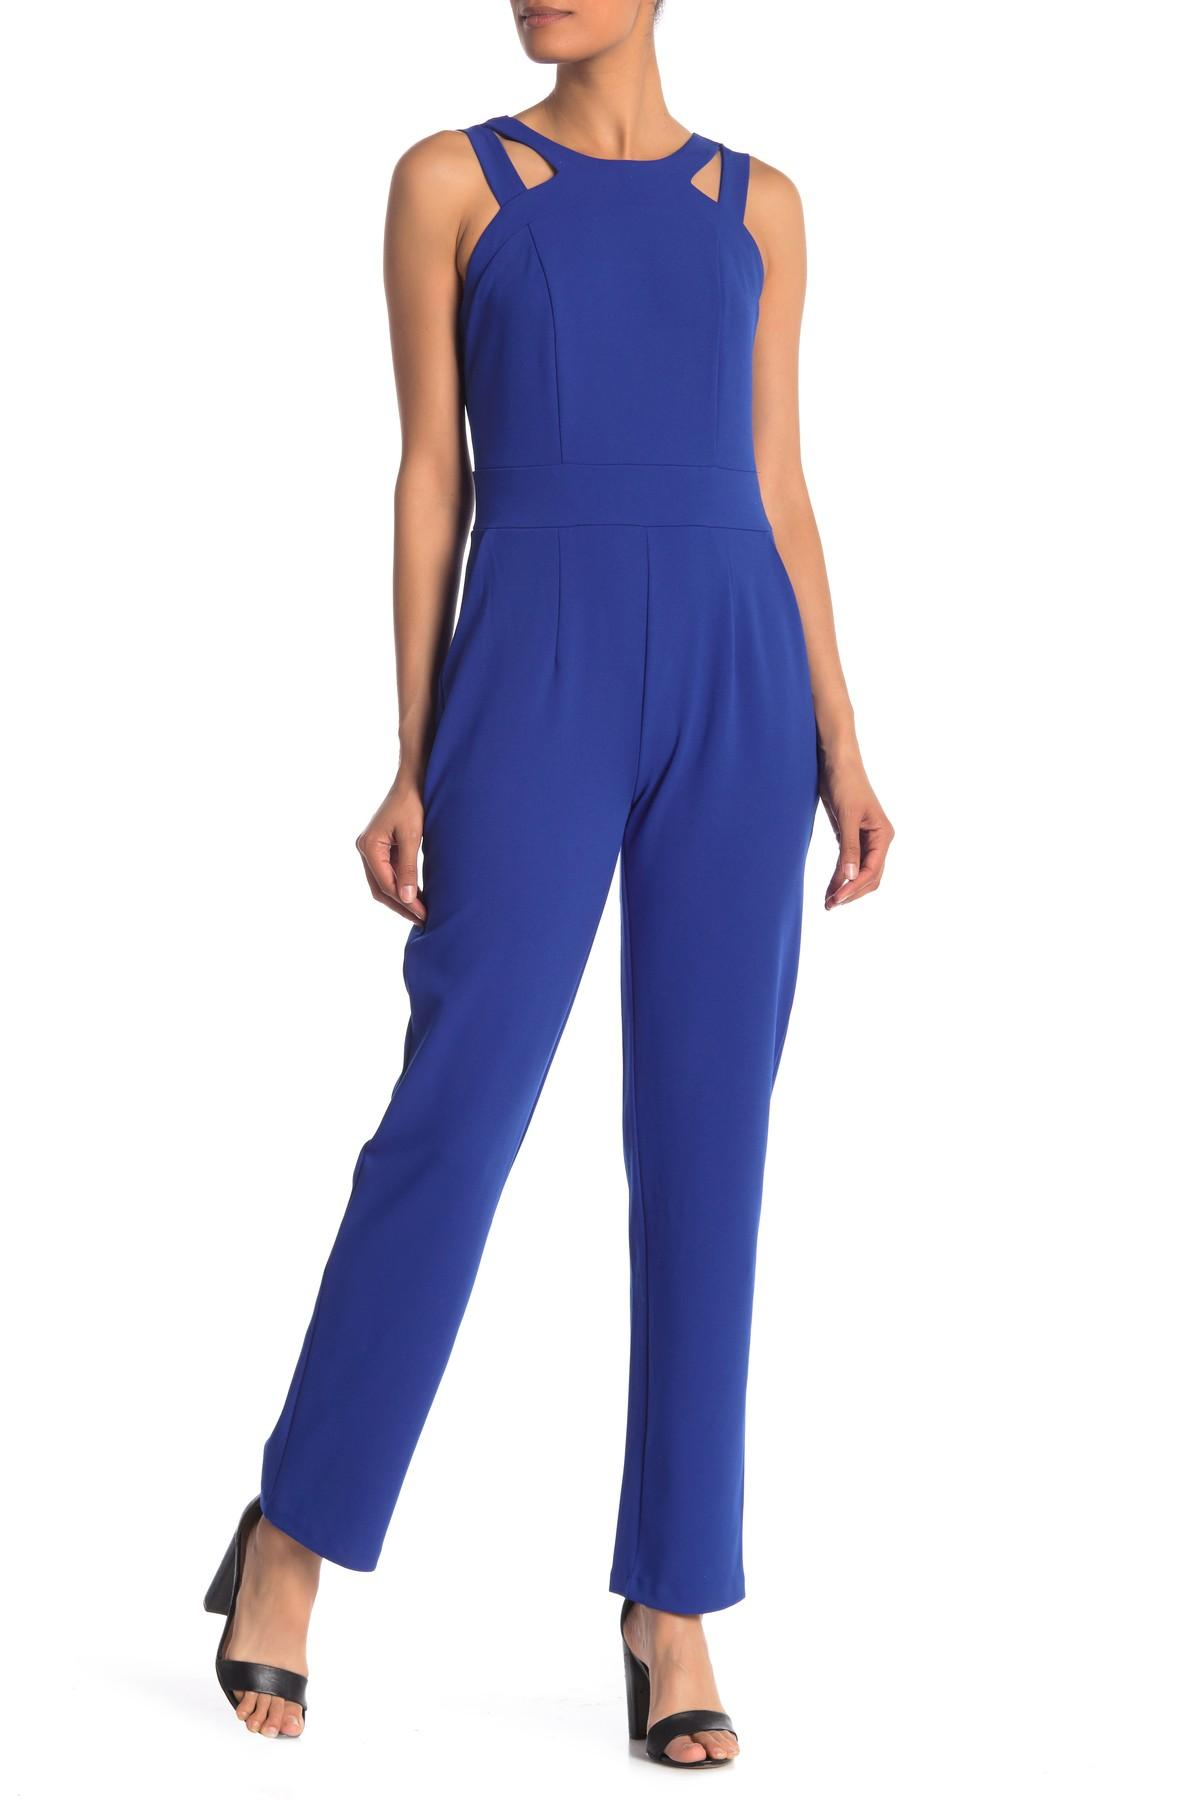 2e6e9b3ae1b Lyst - Spense Solid Woven Jumpsuit in Blue